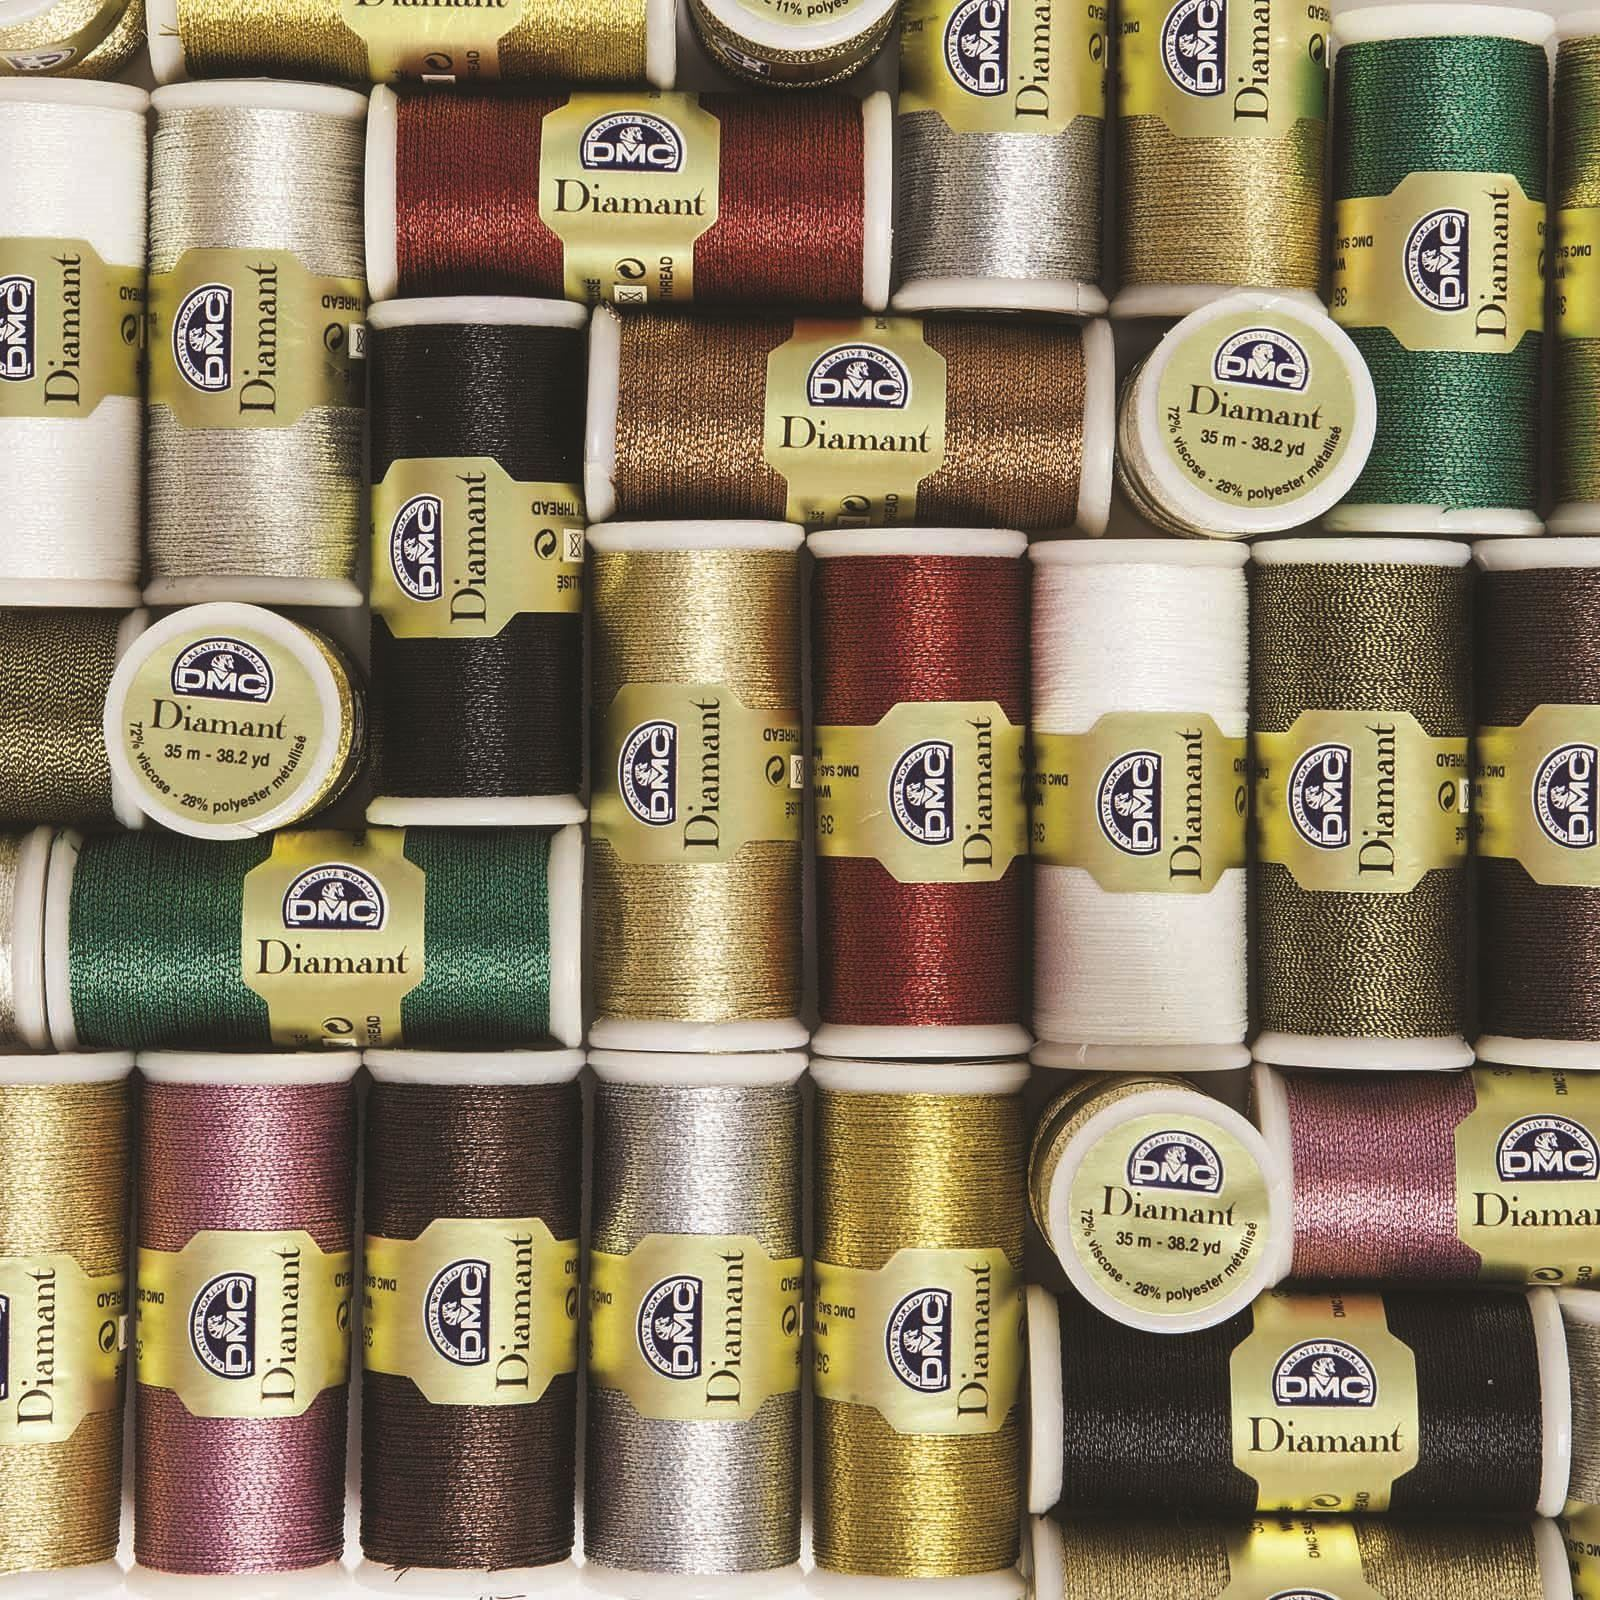 DMC-Diamant-Metallic-Embroidery-Thread-35m-Spool-Cross-Stitch thumbnail 38